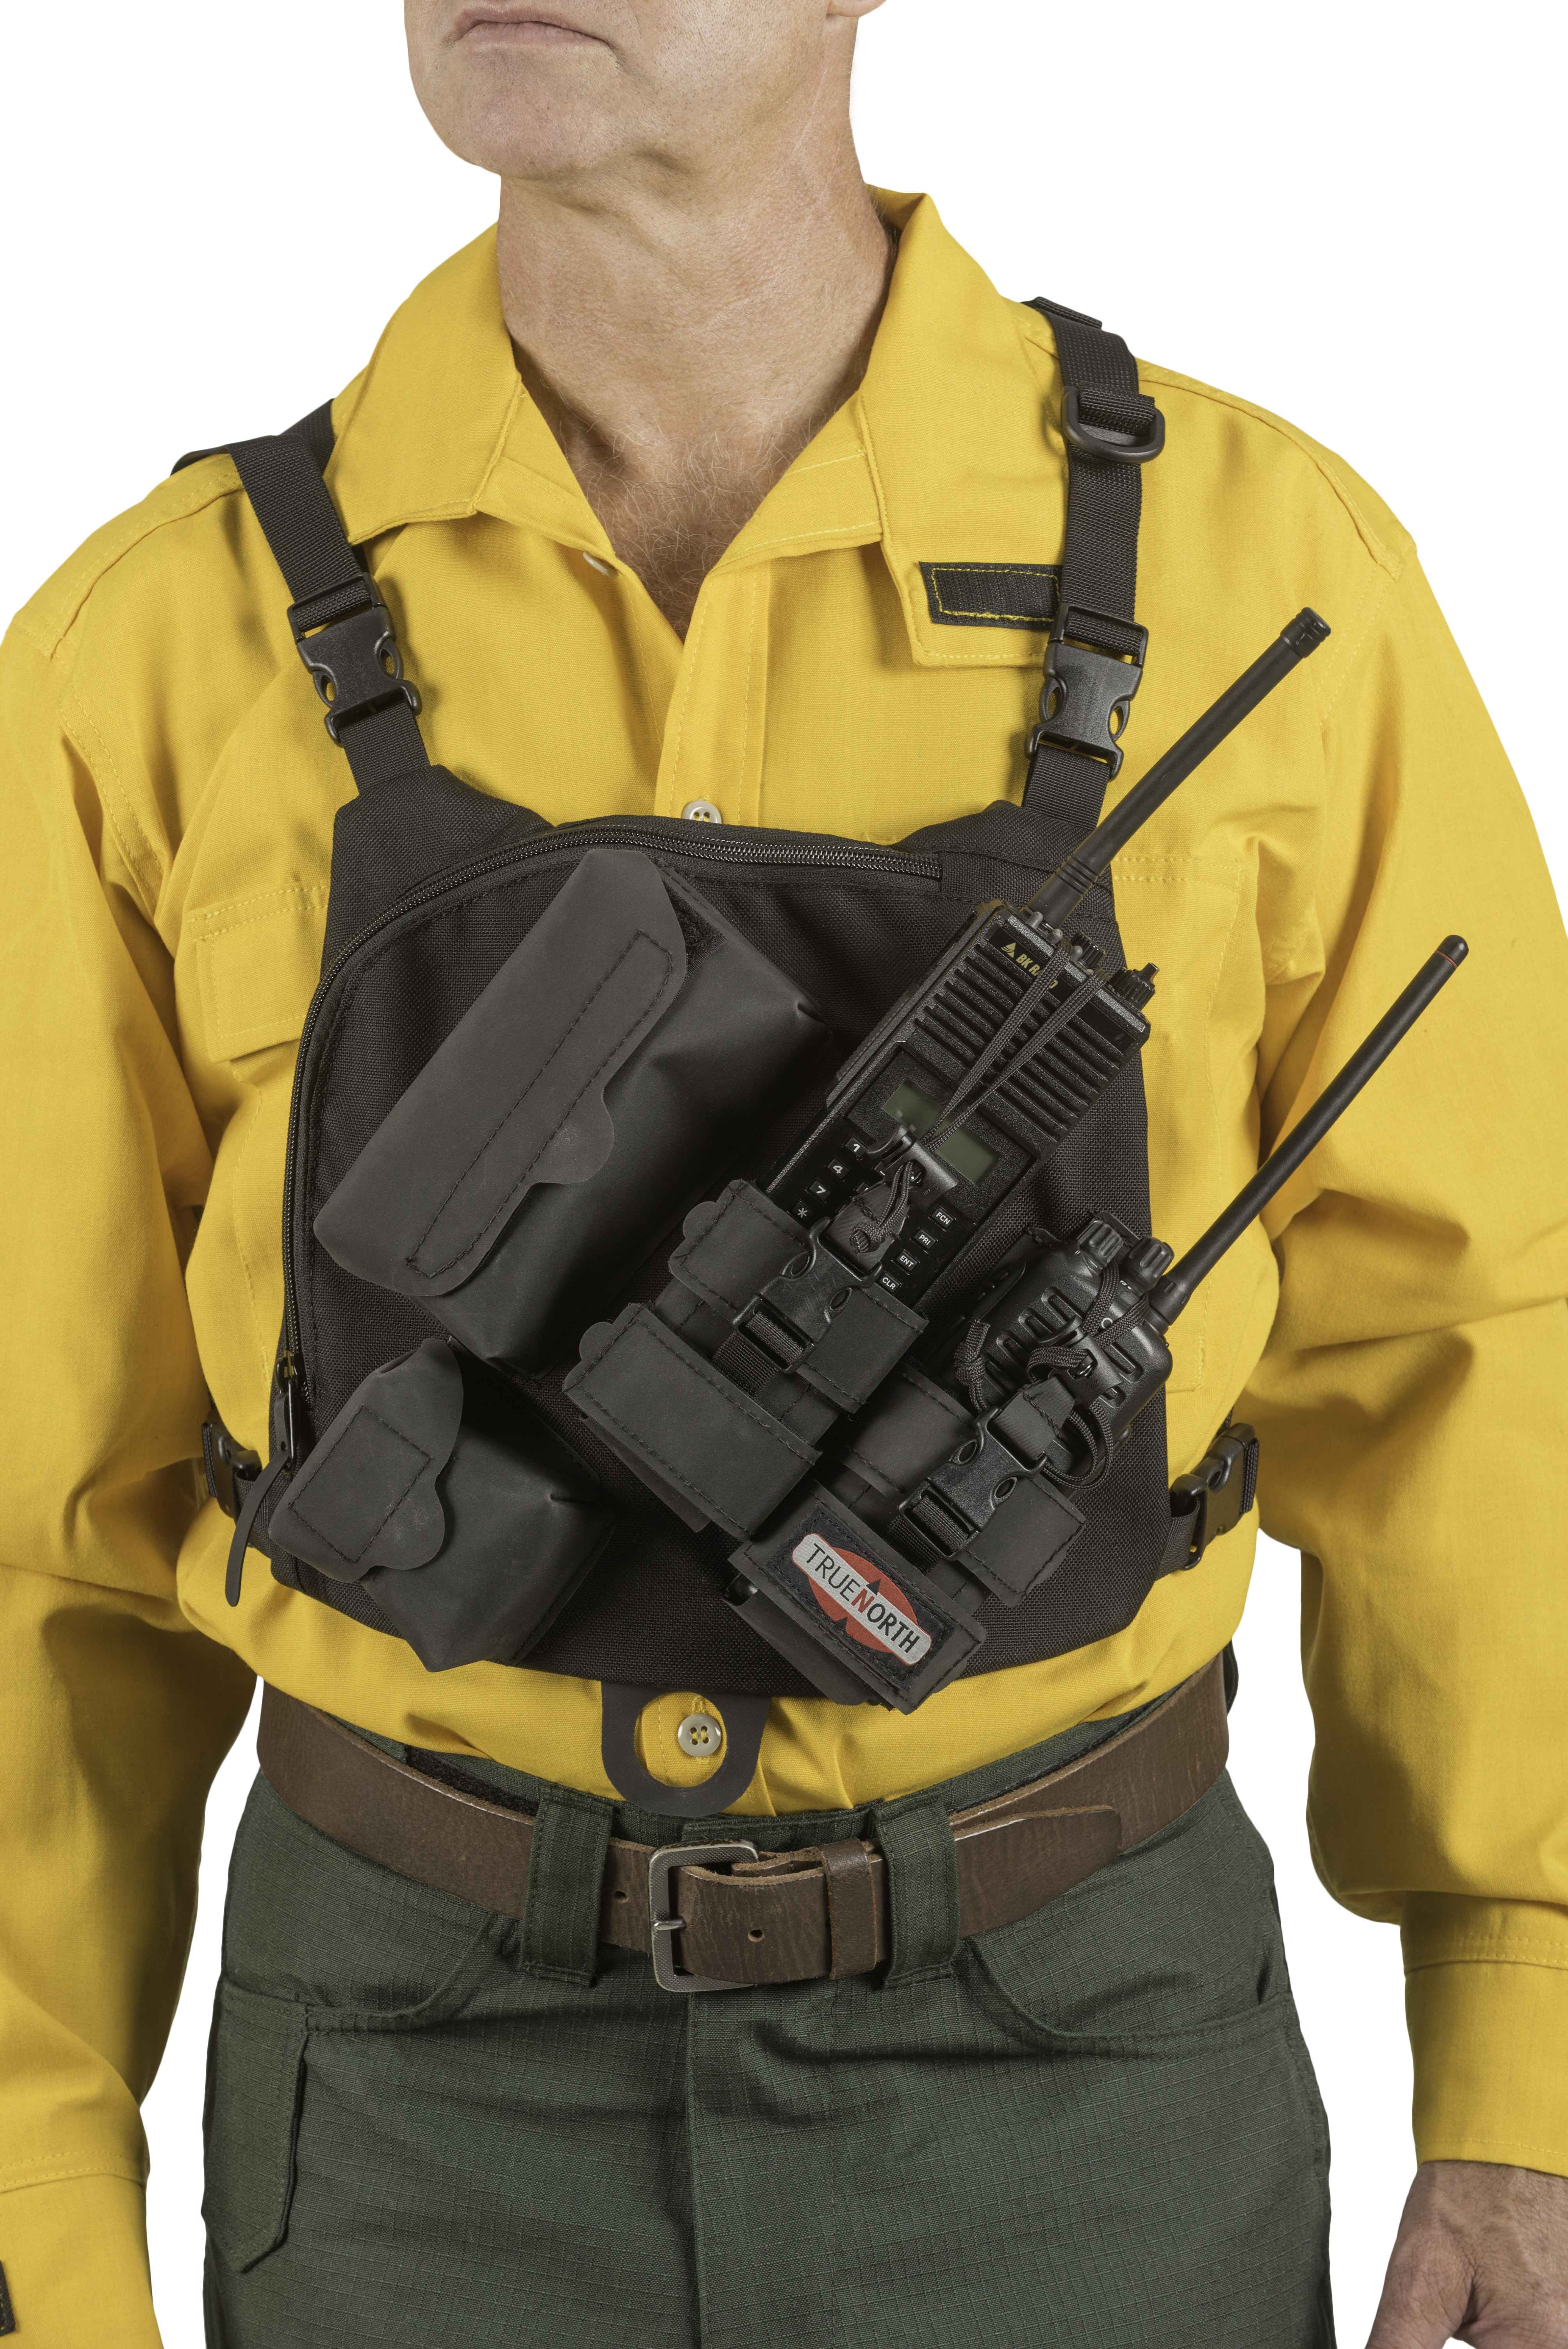 True North Dual Radio Chest Harness/Gen 2